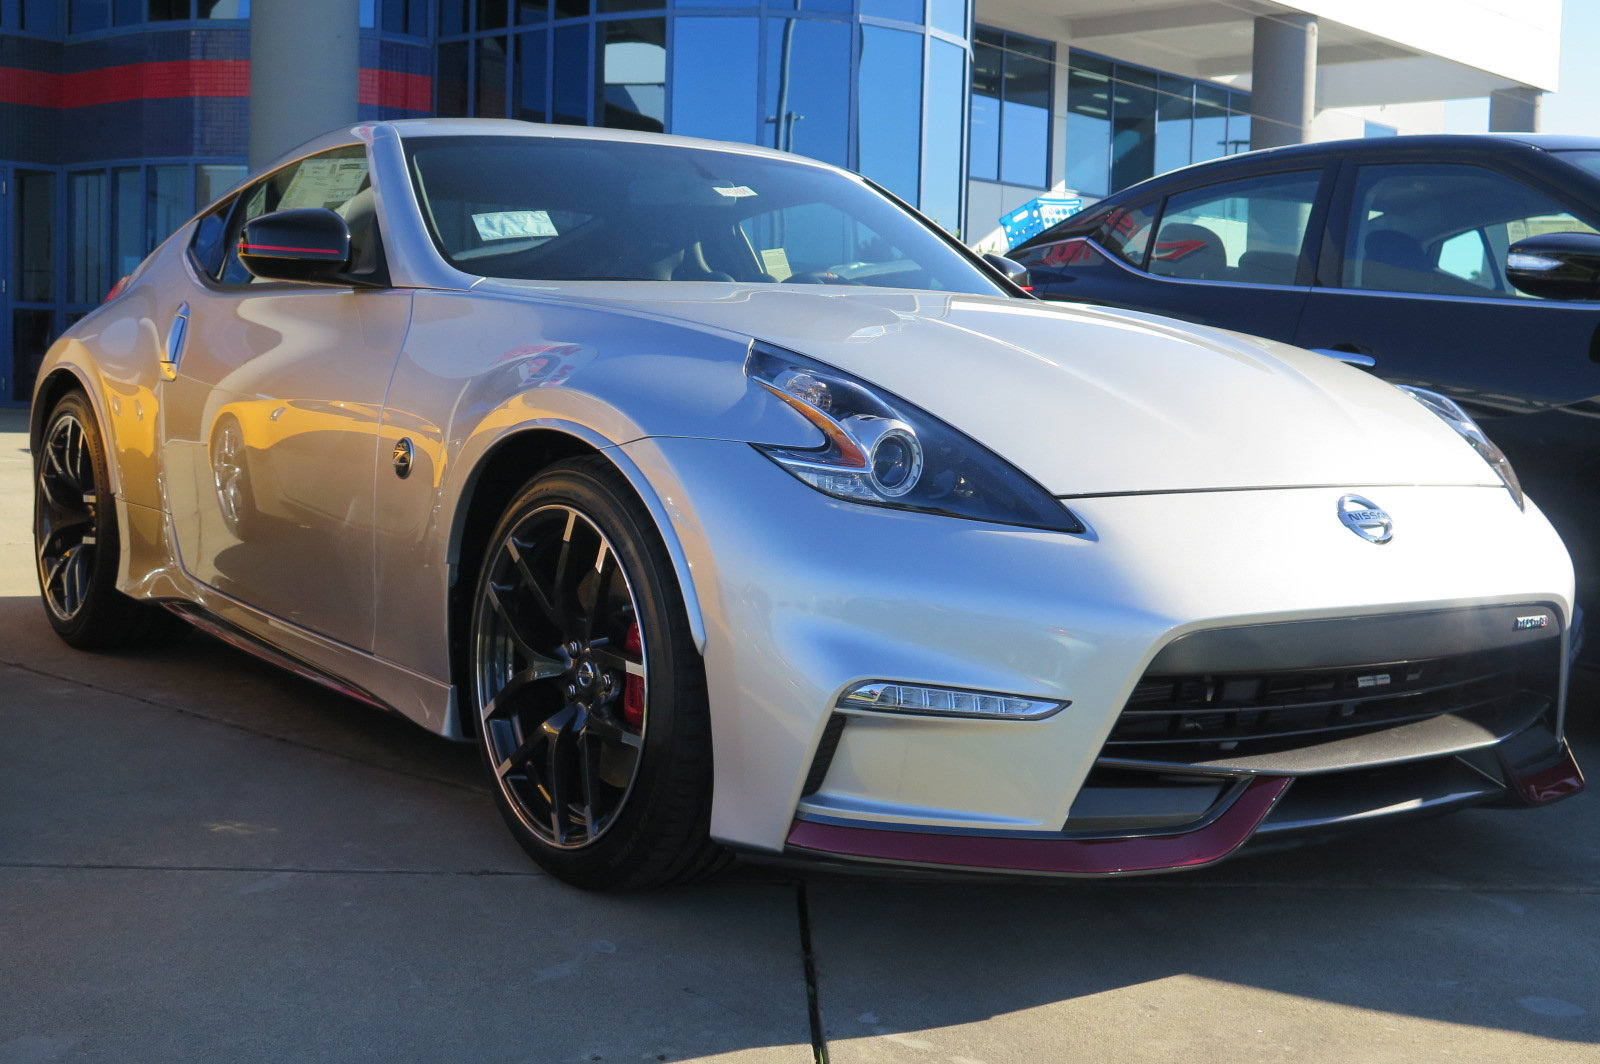 new 2017 nissan 370z nismo 2dr car in roseville n43484 future nissan of roseville. Black Bedroom Furniture Sets. Home Design Ideas